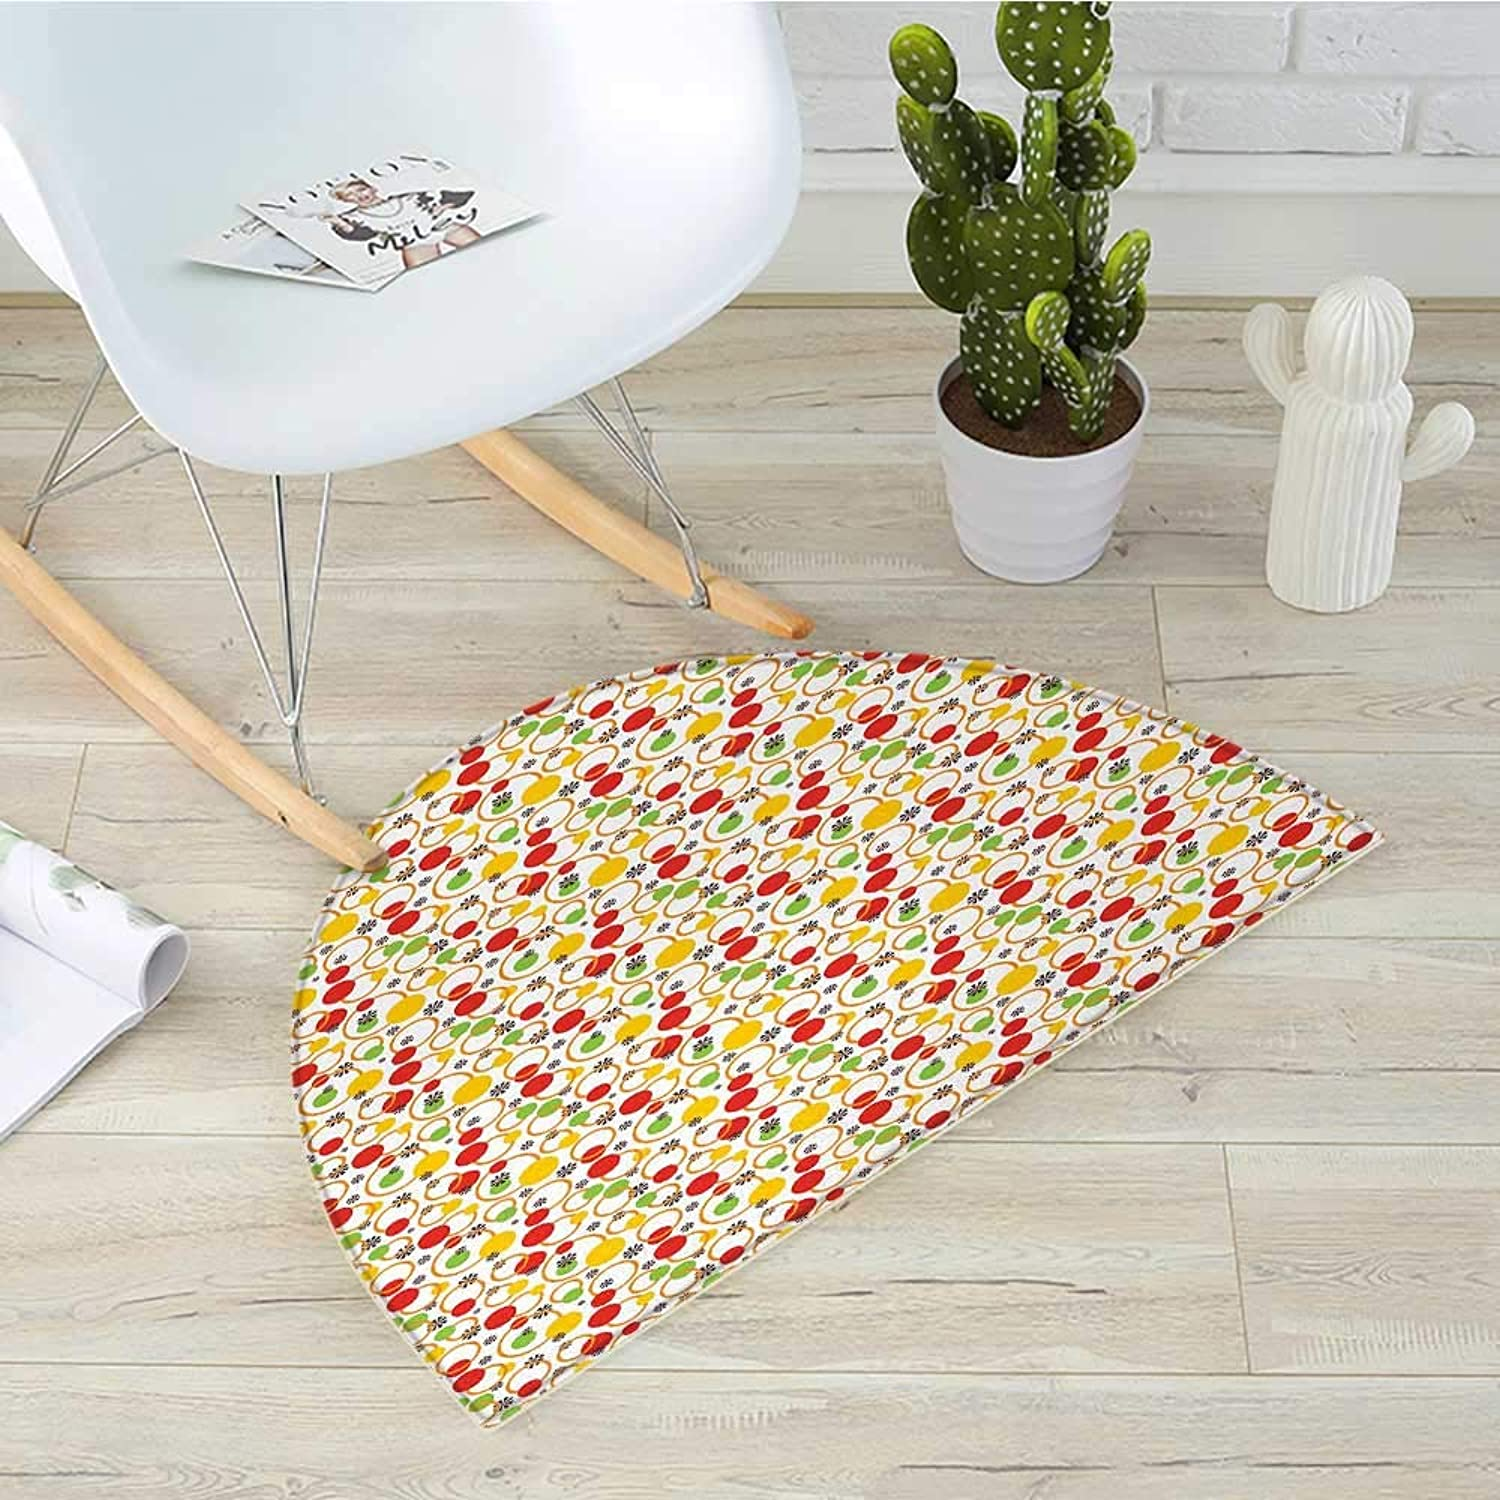 colorful Half Round Door mats Abstract Circles and Snowflake Pattern with Vibrant colors Geometric Composition Bathroom Mat H 35.4  xD 53.1  Multicolor